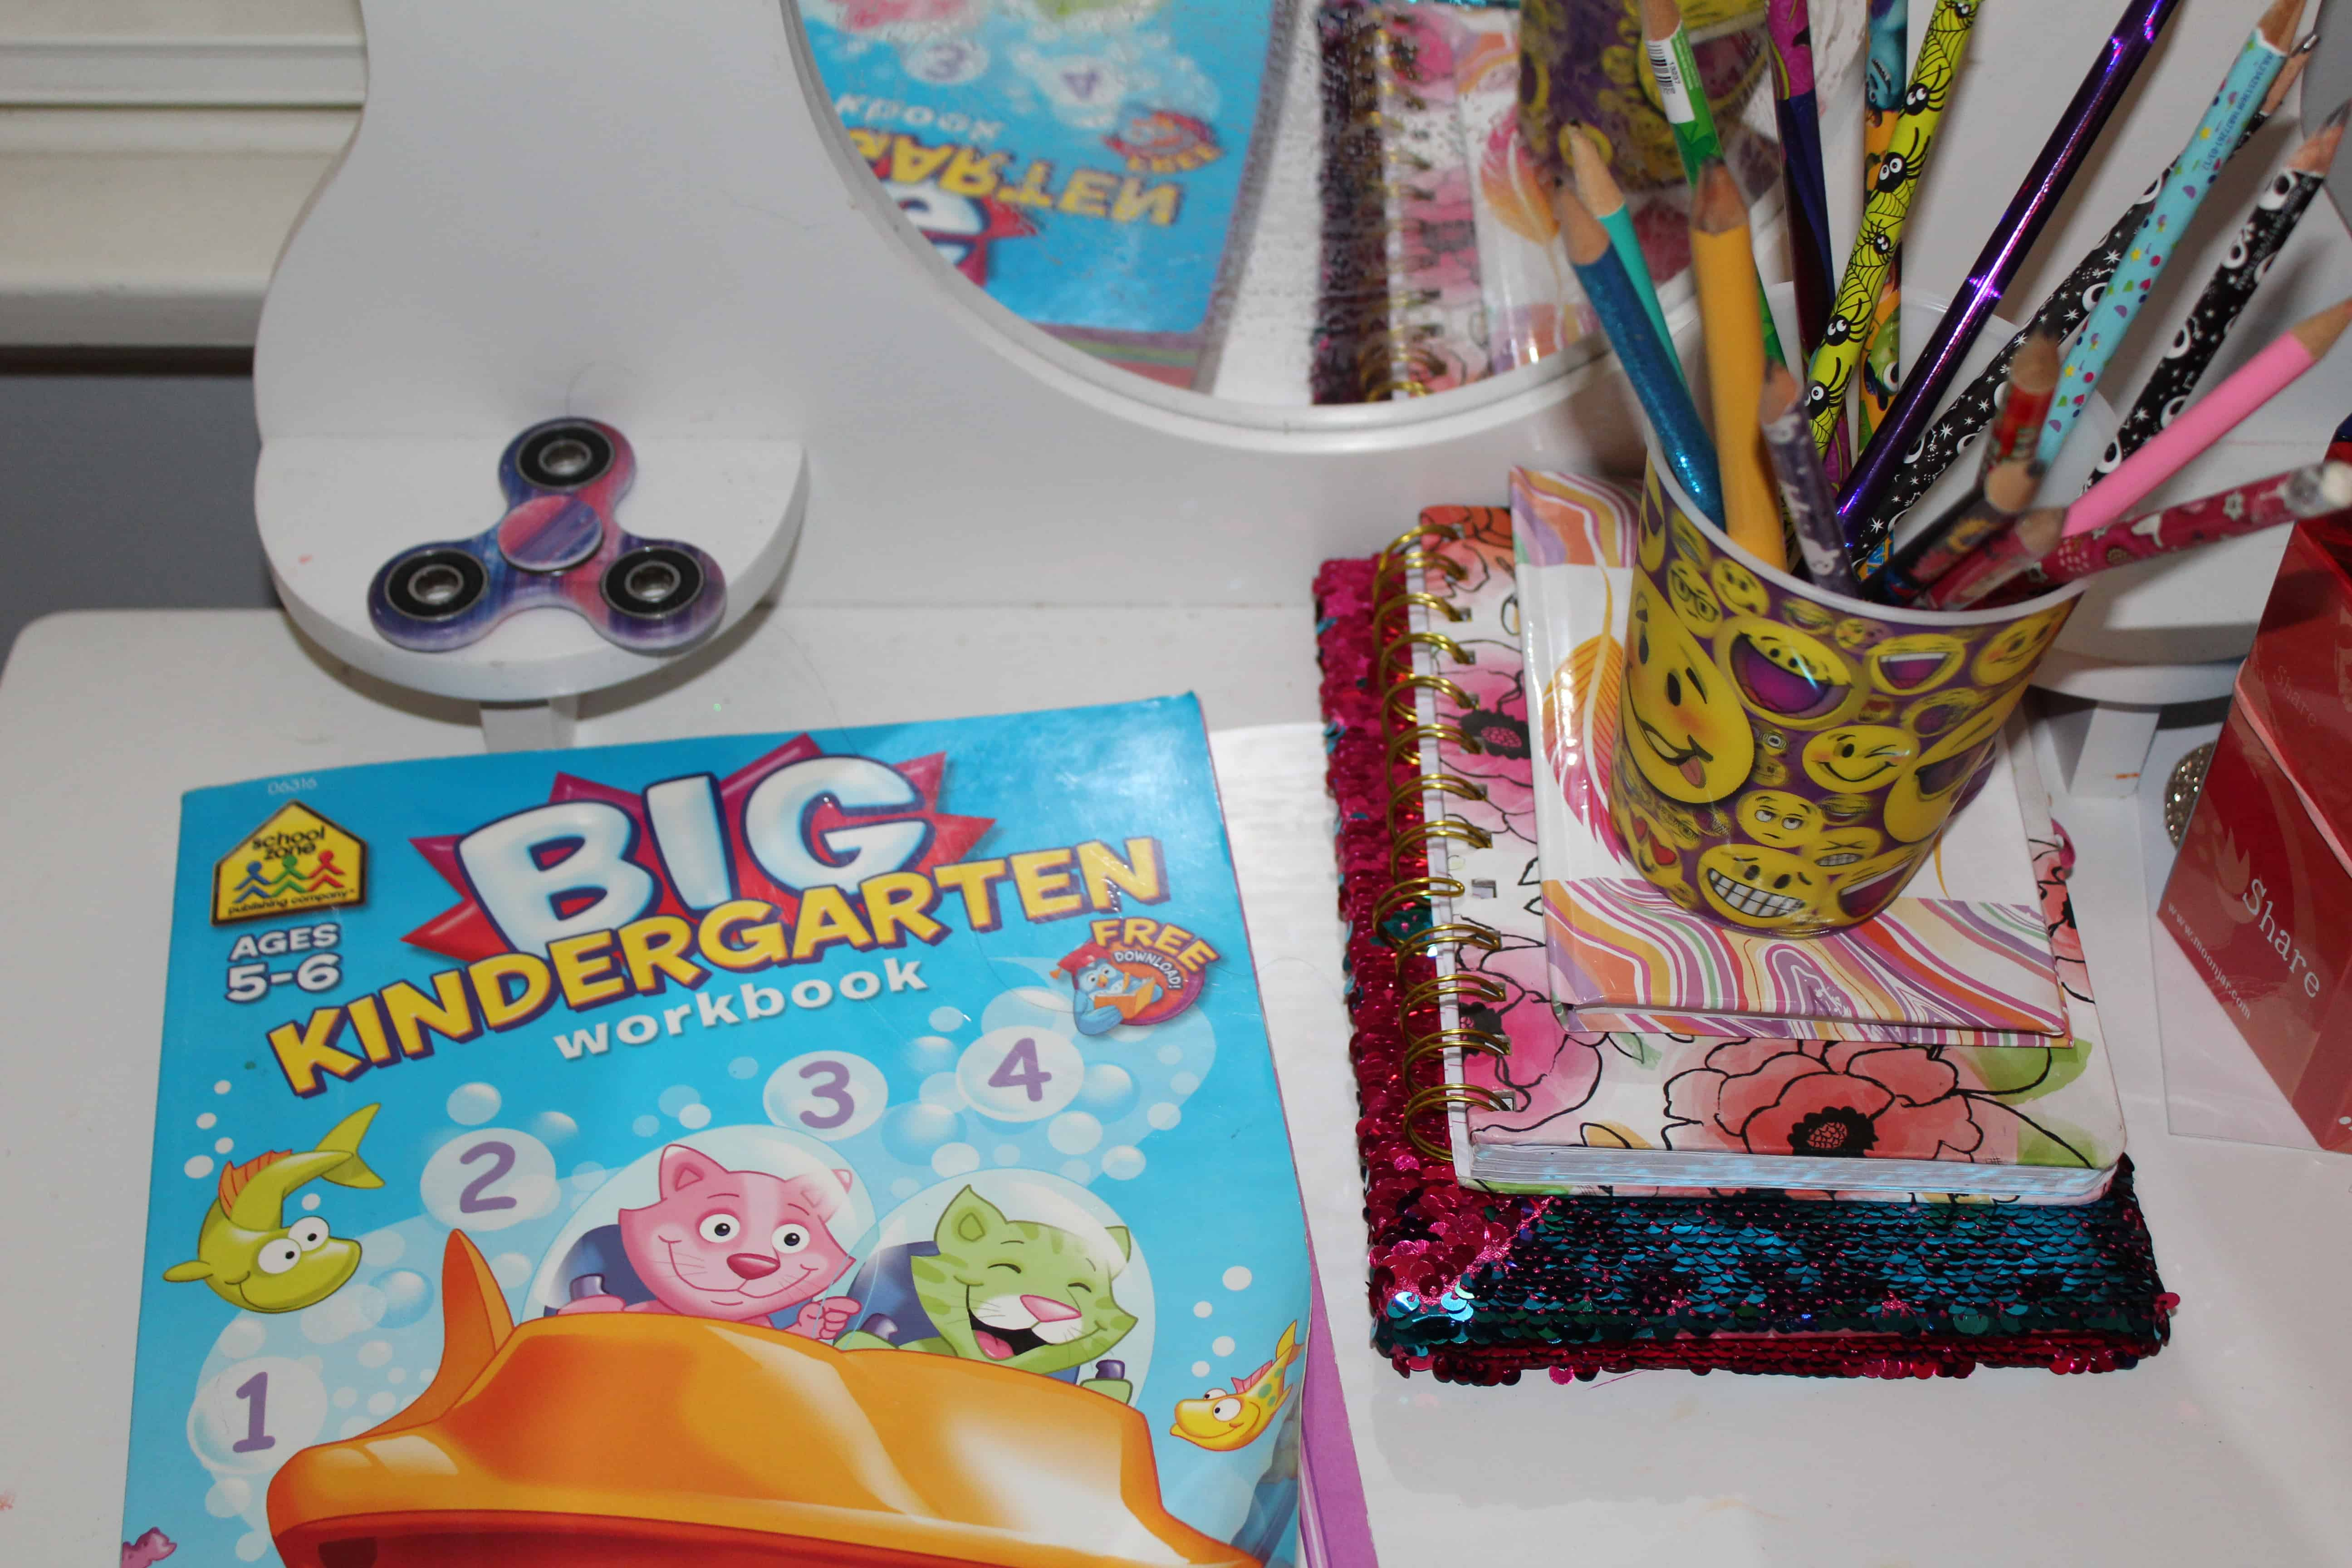 Big Kindergarten workbook for toddles next to a cup of pencils and fidget spinner